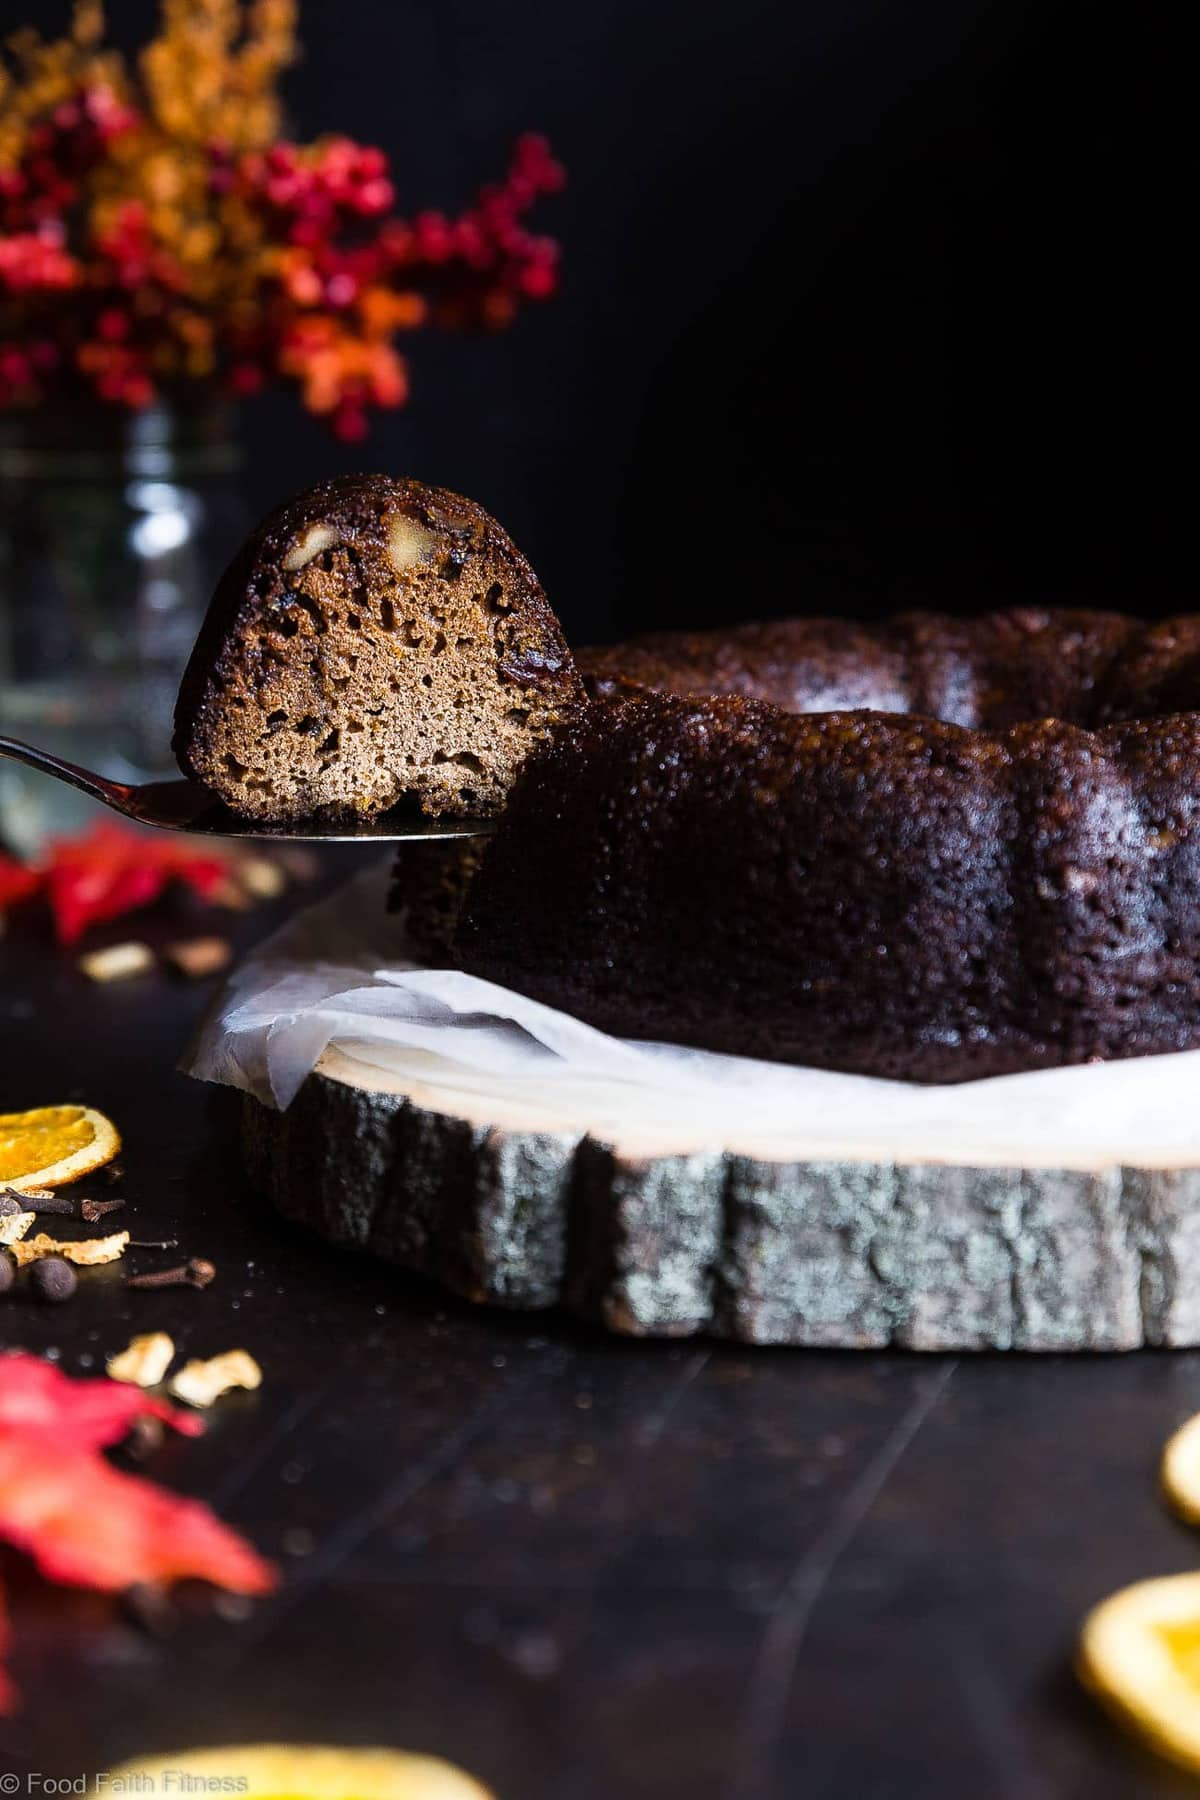 Gluten Free Mulled Wine cake - This better for you red wine cake has all the spicy, cozy flavors of the classic holiday drink! It's gluten/grain/dairy free and BOOZY! What more could you want? | #Foodfaithfitness | #Glutenfree #Grainfree #Dairyfree #Mulledwine #Cake